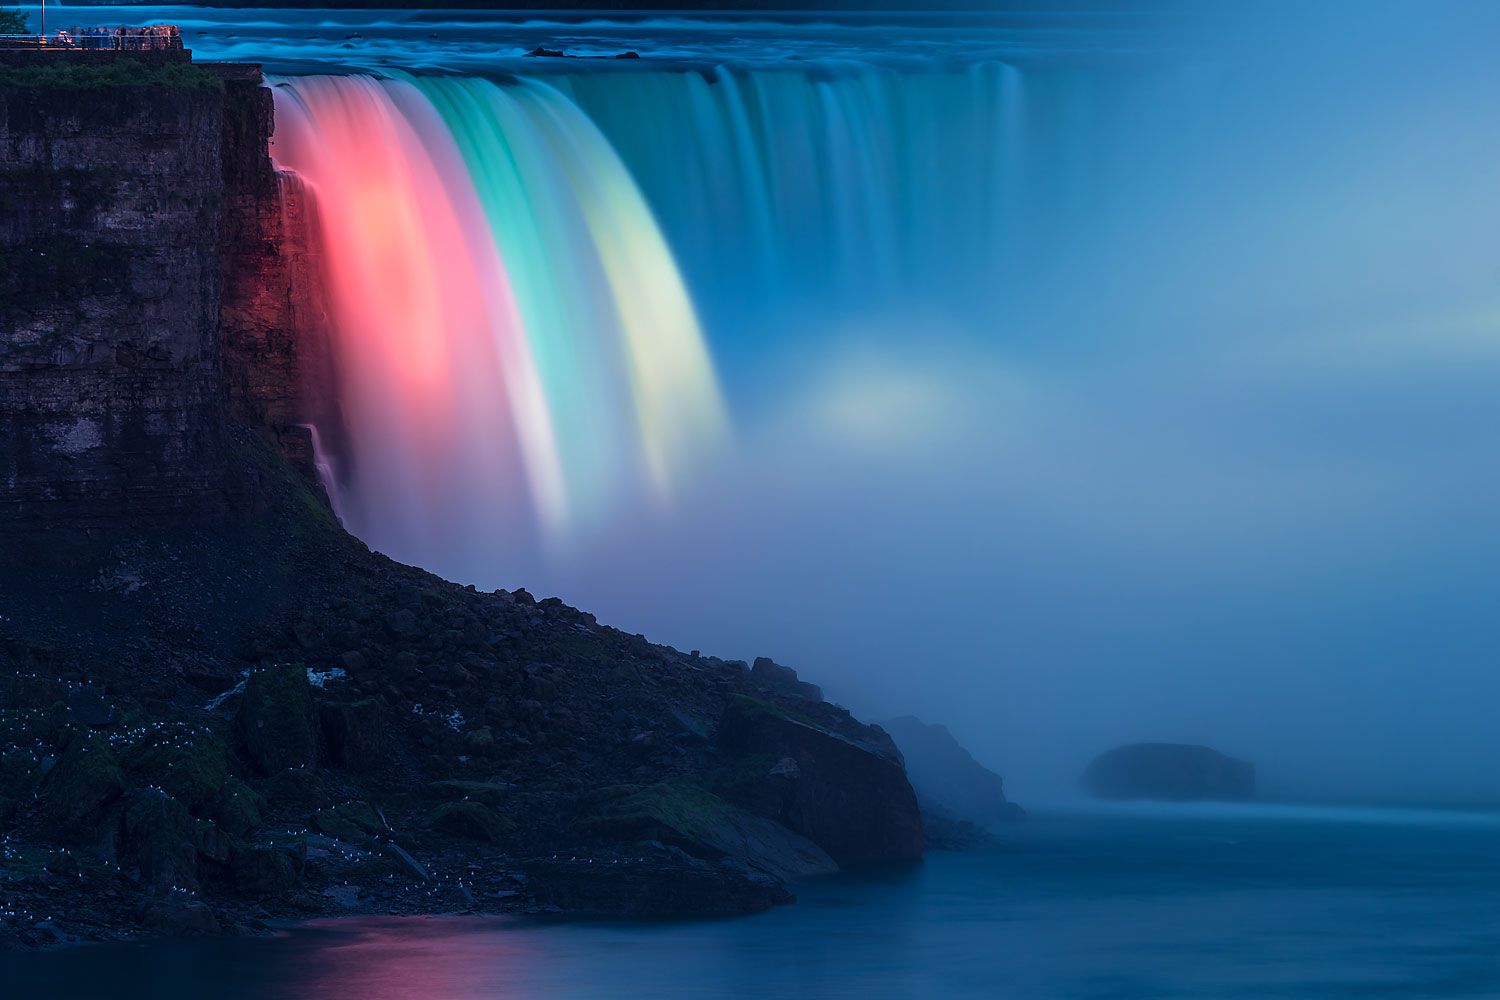 Niagara Falls - Illuminated Horseshoe Falls a.k.a. Canadian Falls as Seen from the Canadian Side in the Evening Every evening colorful lights illuminate the Falls. The rock on the left is Goat Island (United States). The white spots on the rock are birds.